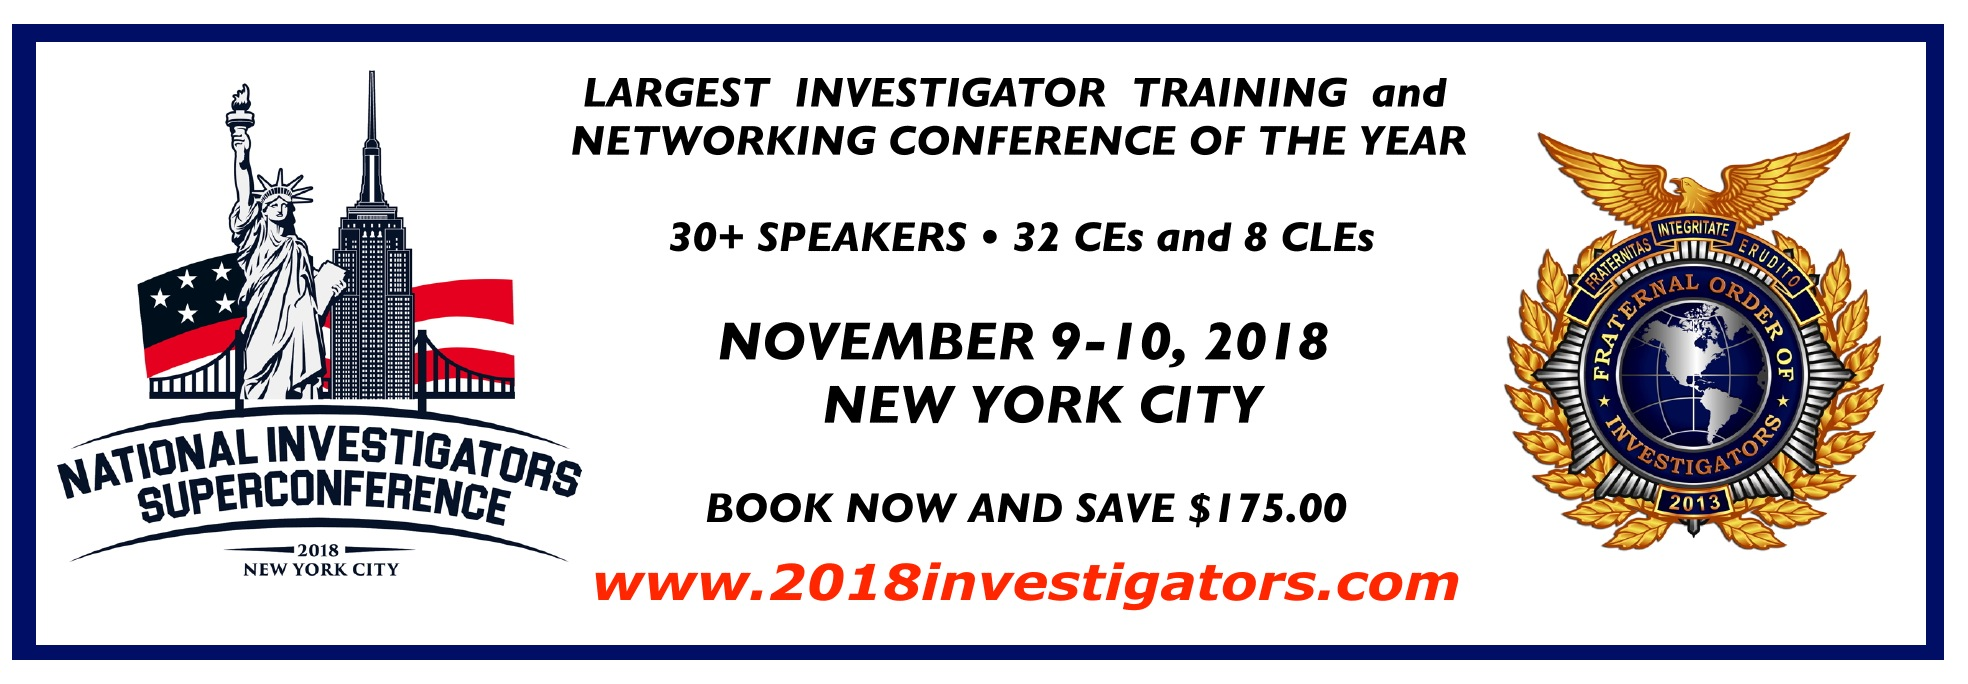 NYC Investigators SuperConference